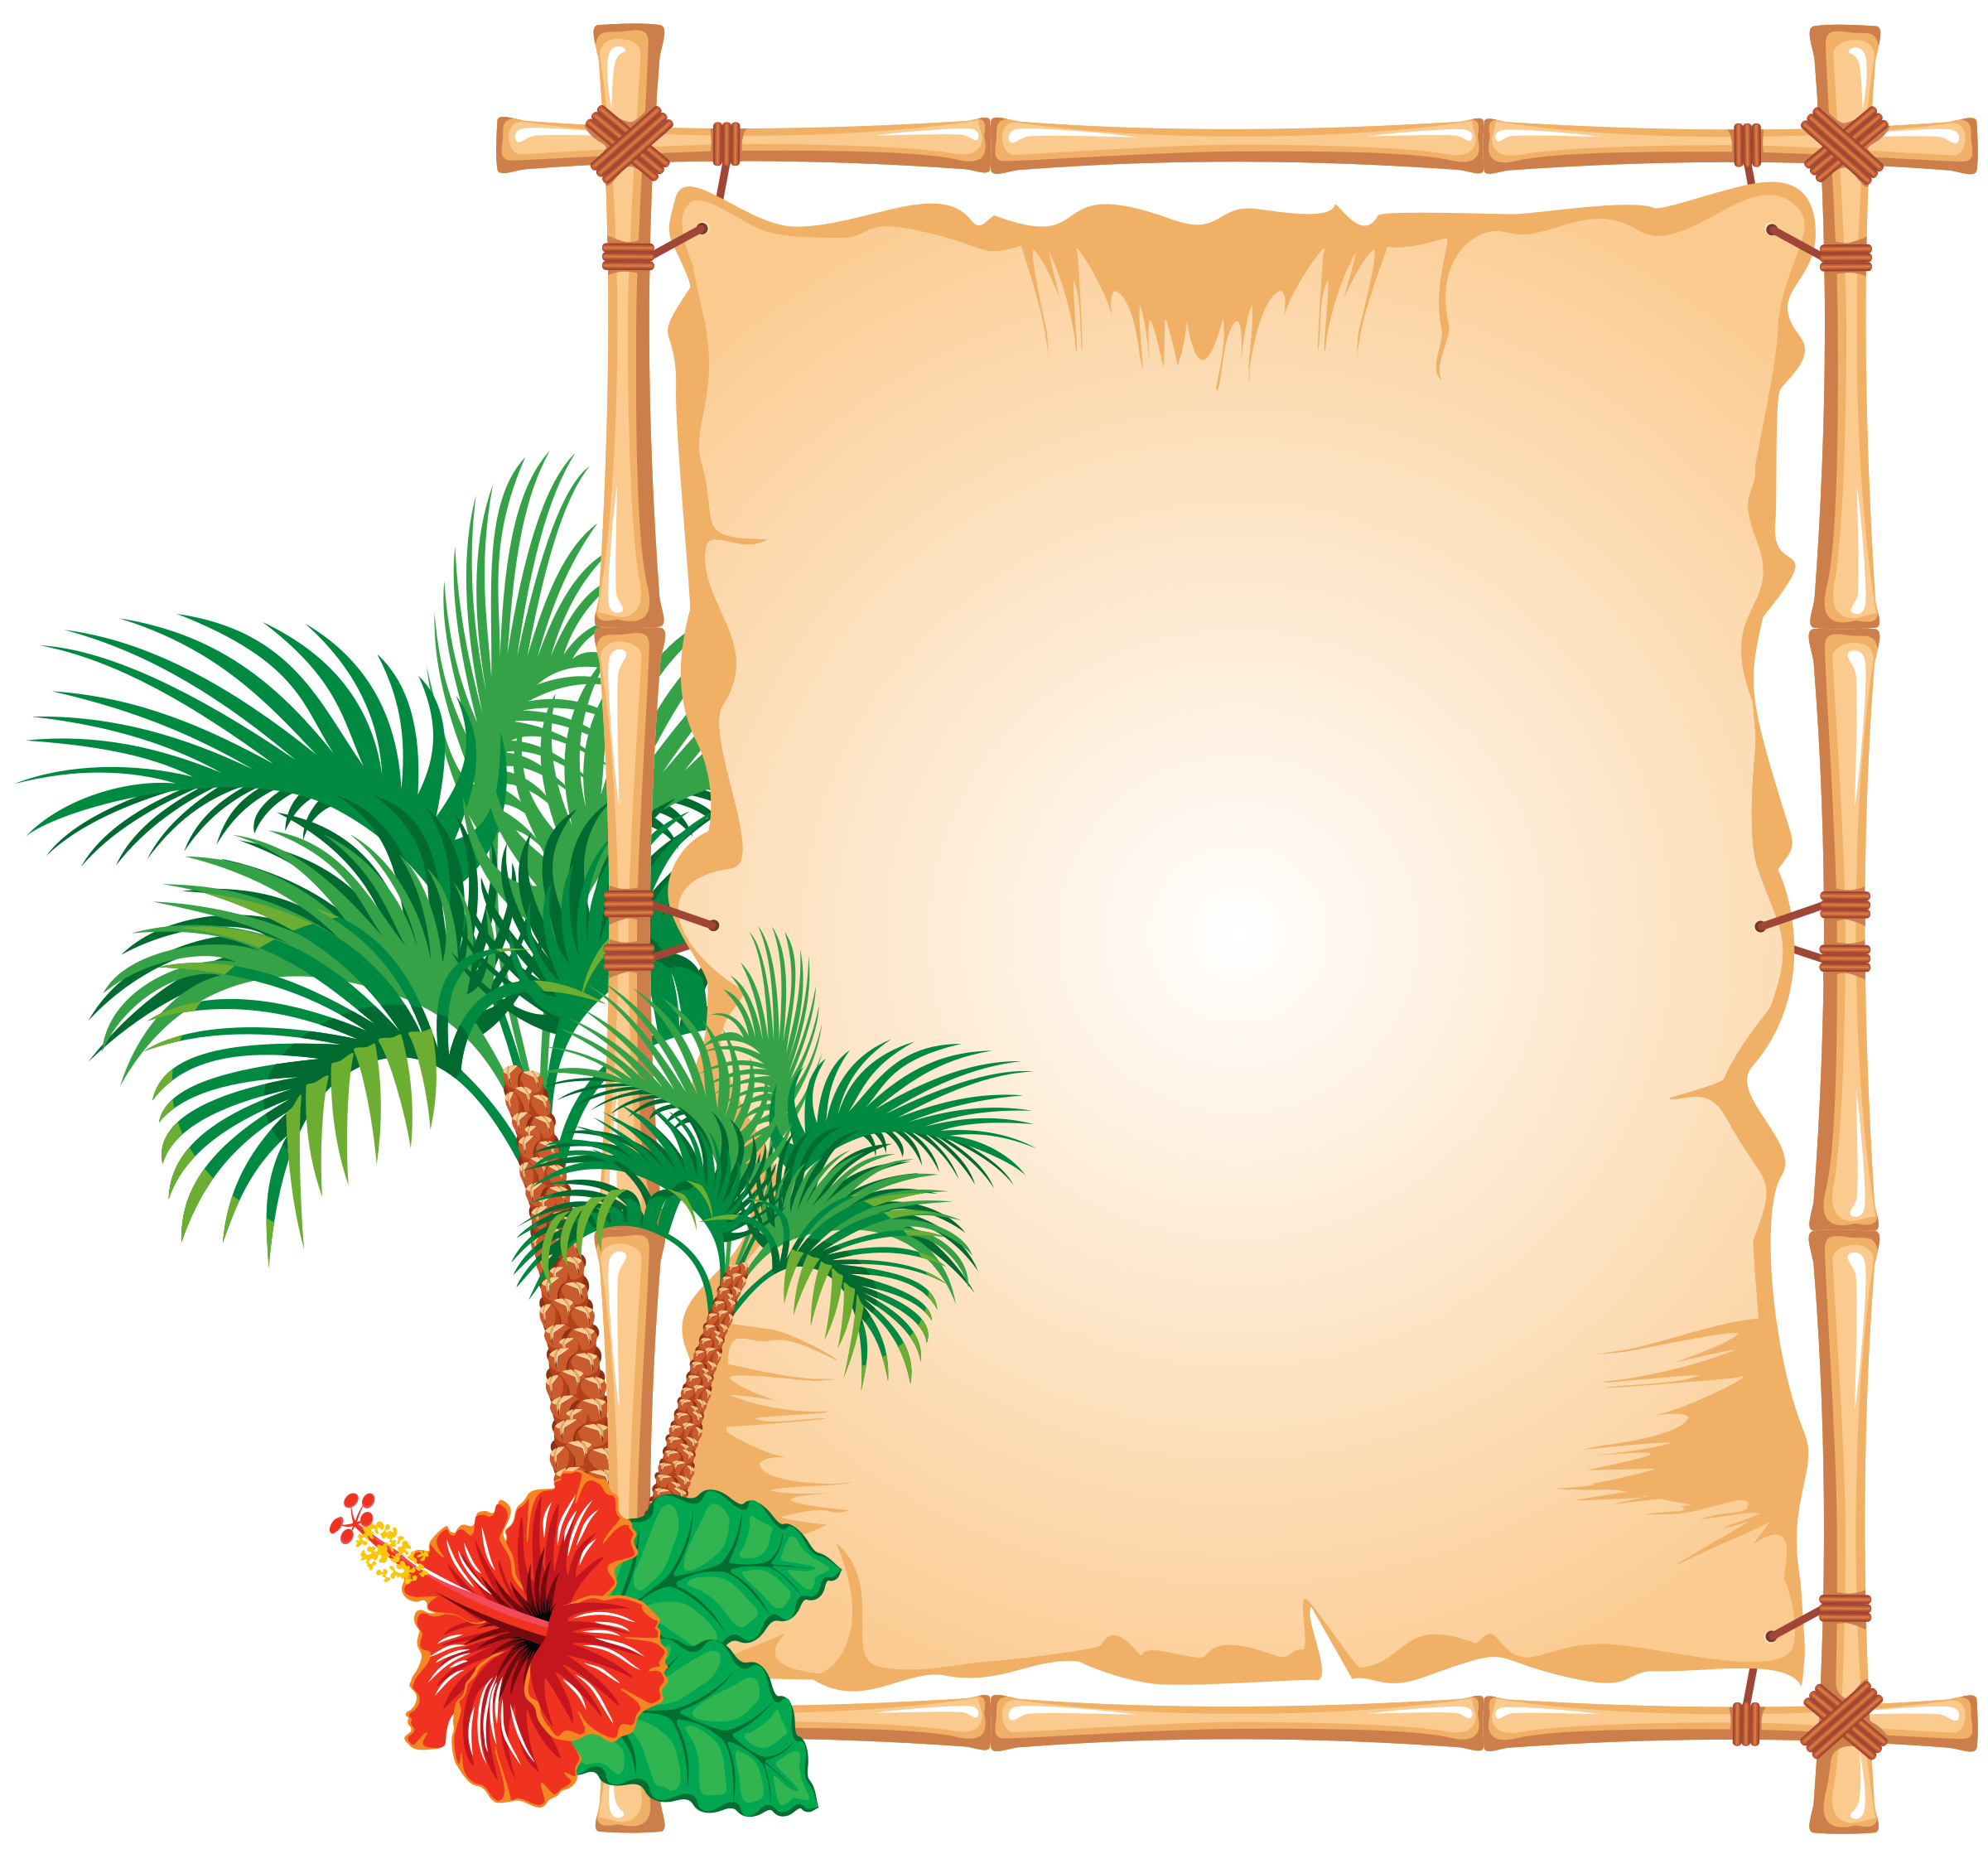 Caribbean clipart flower decoration Bamboo frame Decorated Clipart frame